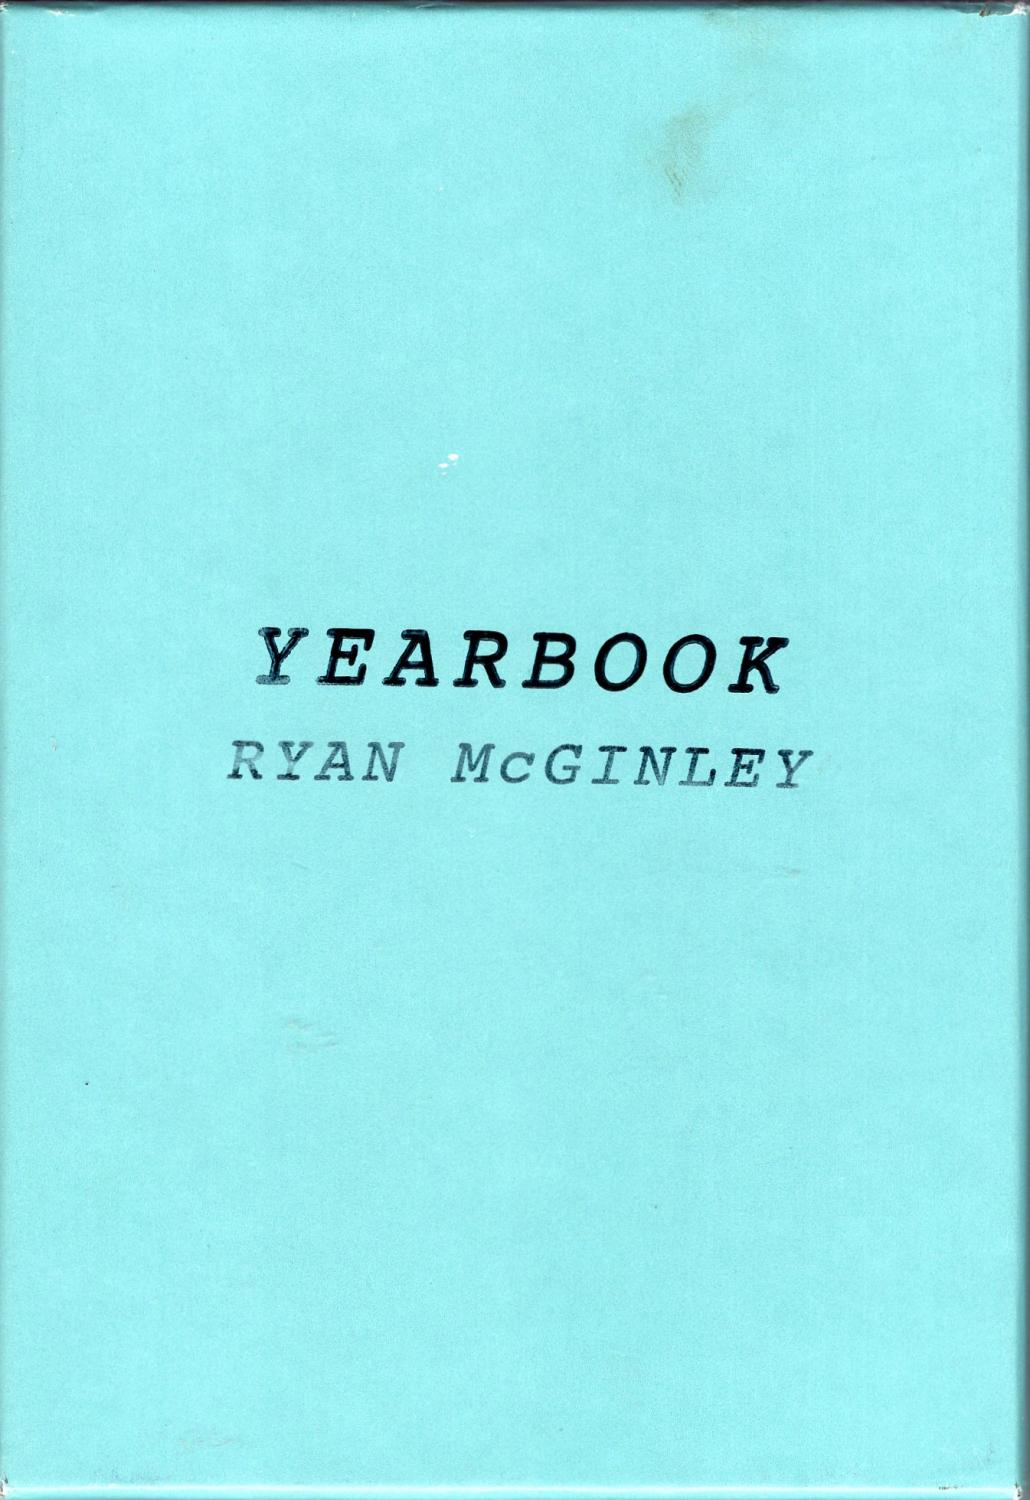 Ryan Mcginley 2002 Index Books First Edition Mint